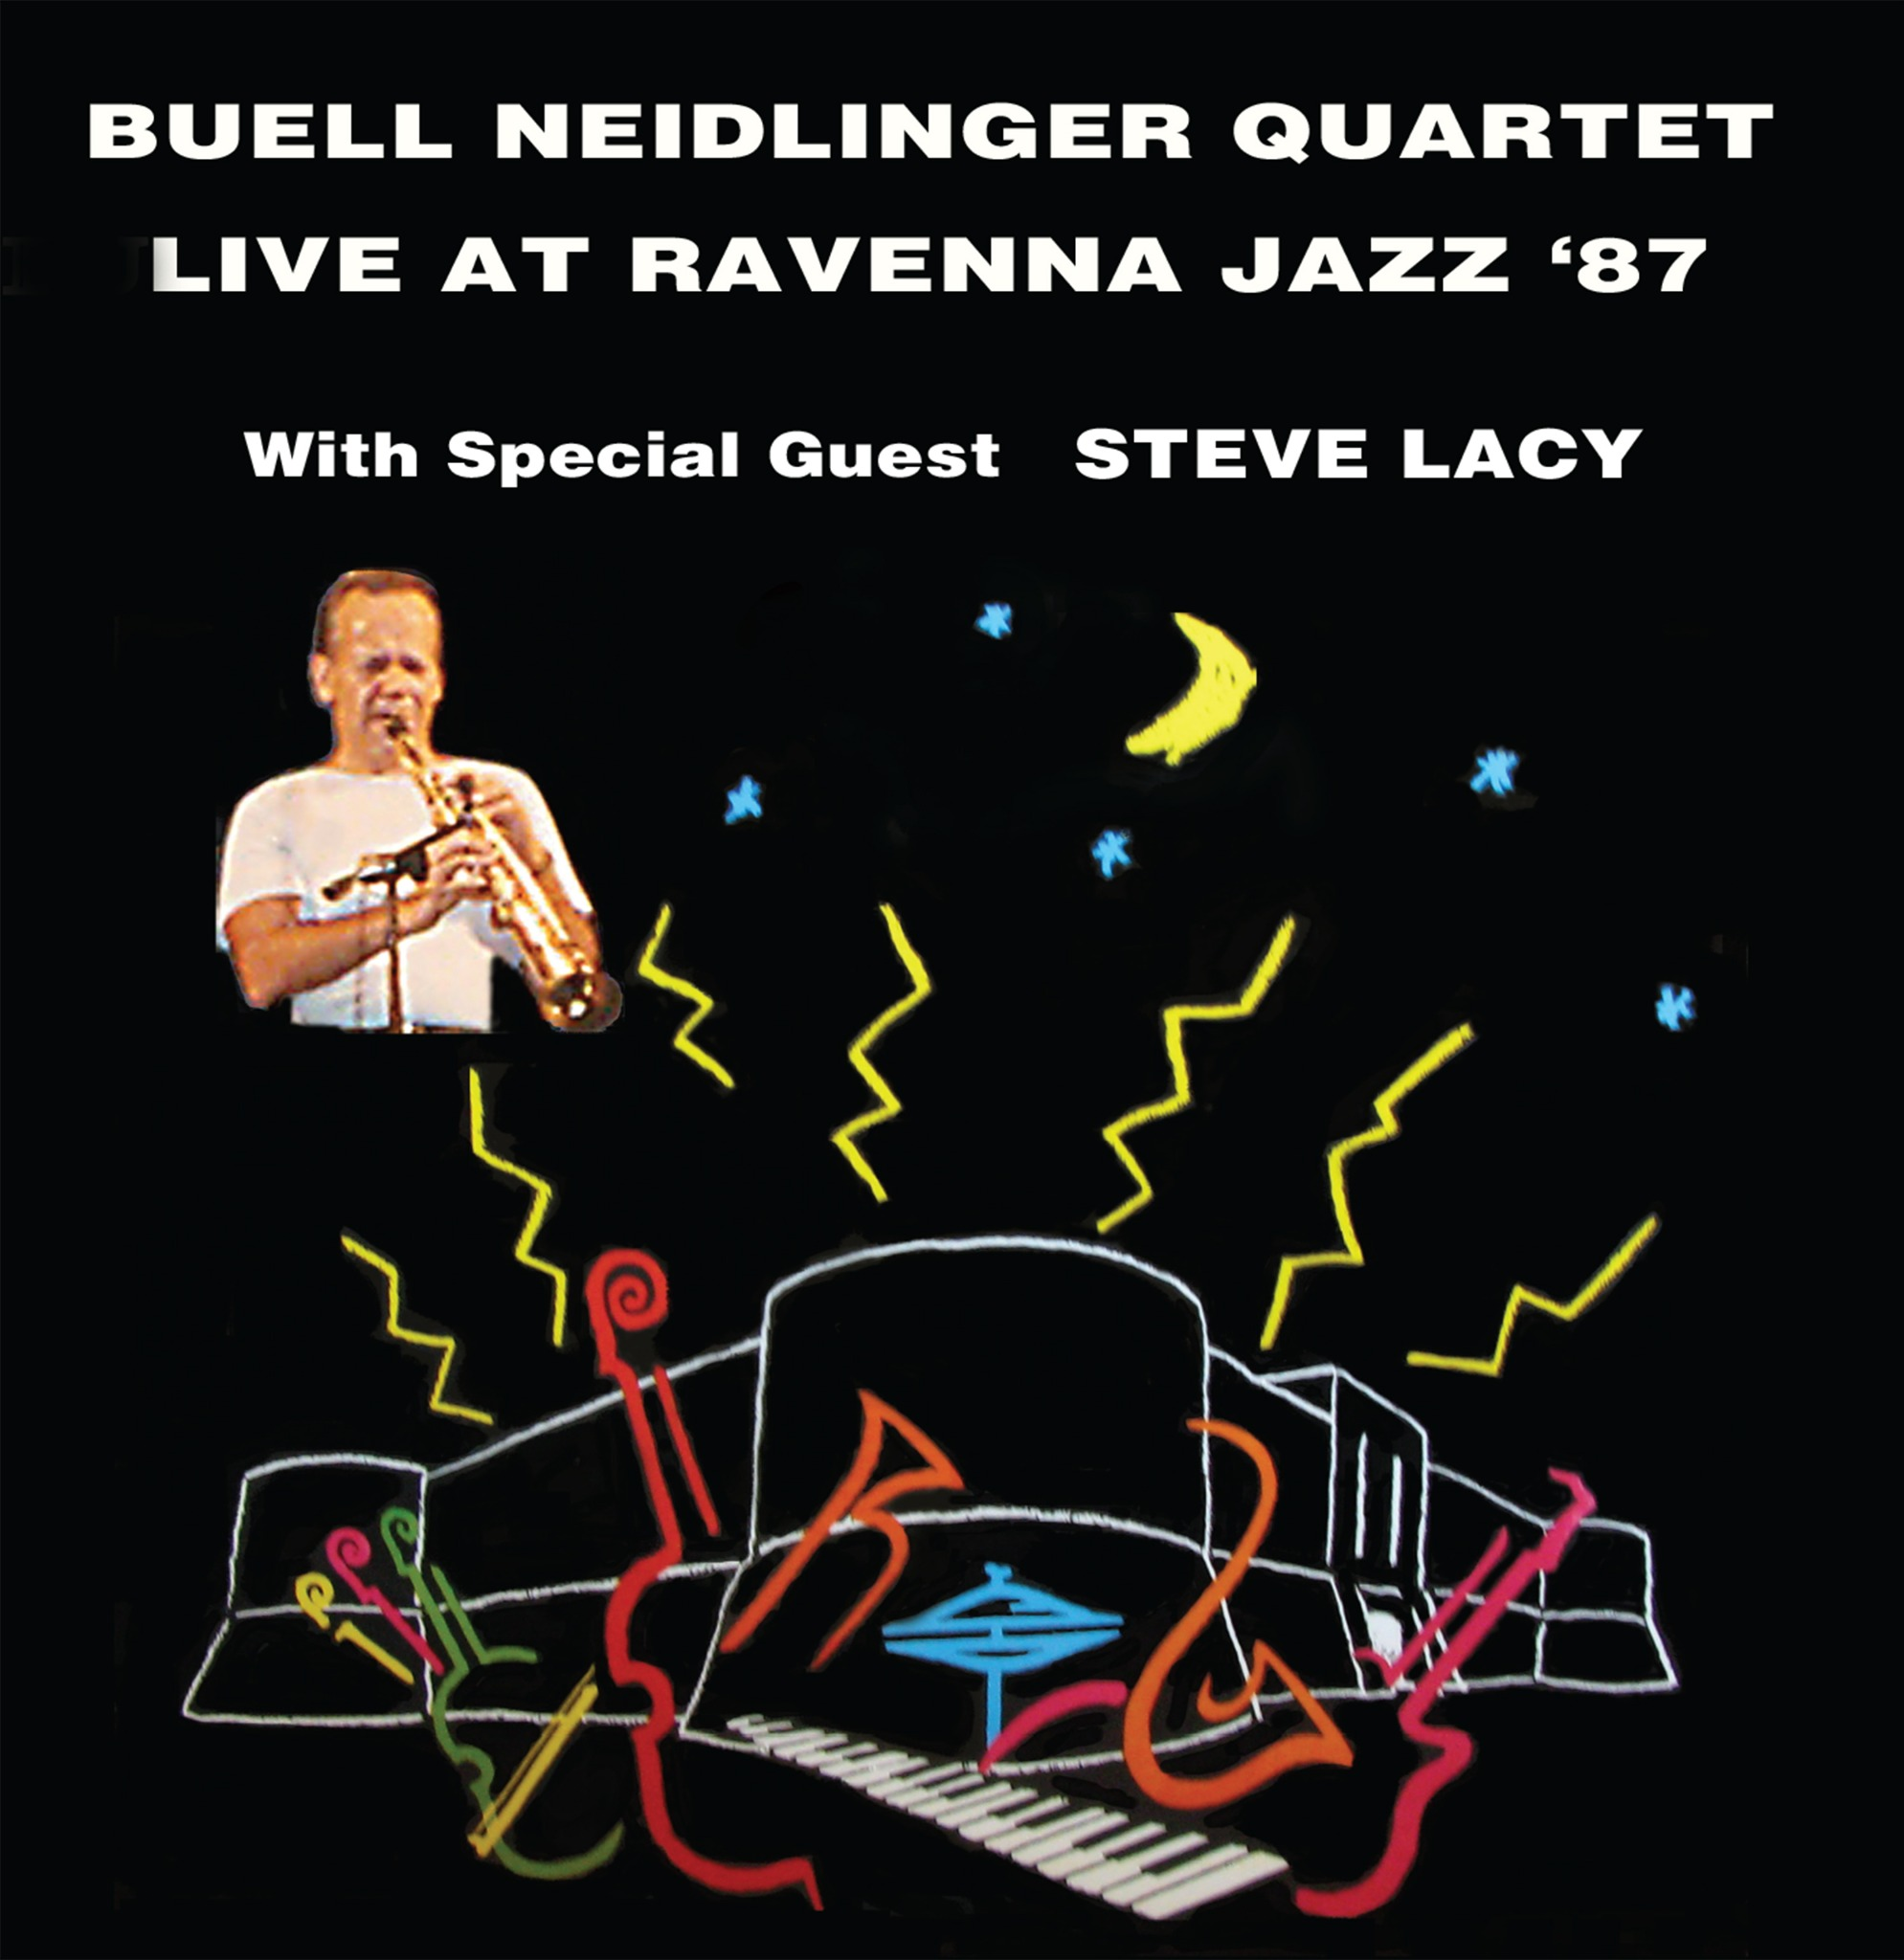 Buell Neidlinger Quartet - Live at Ravenna Jazz '87 plus Steve Lacy (K2B2 3969) CD